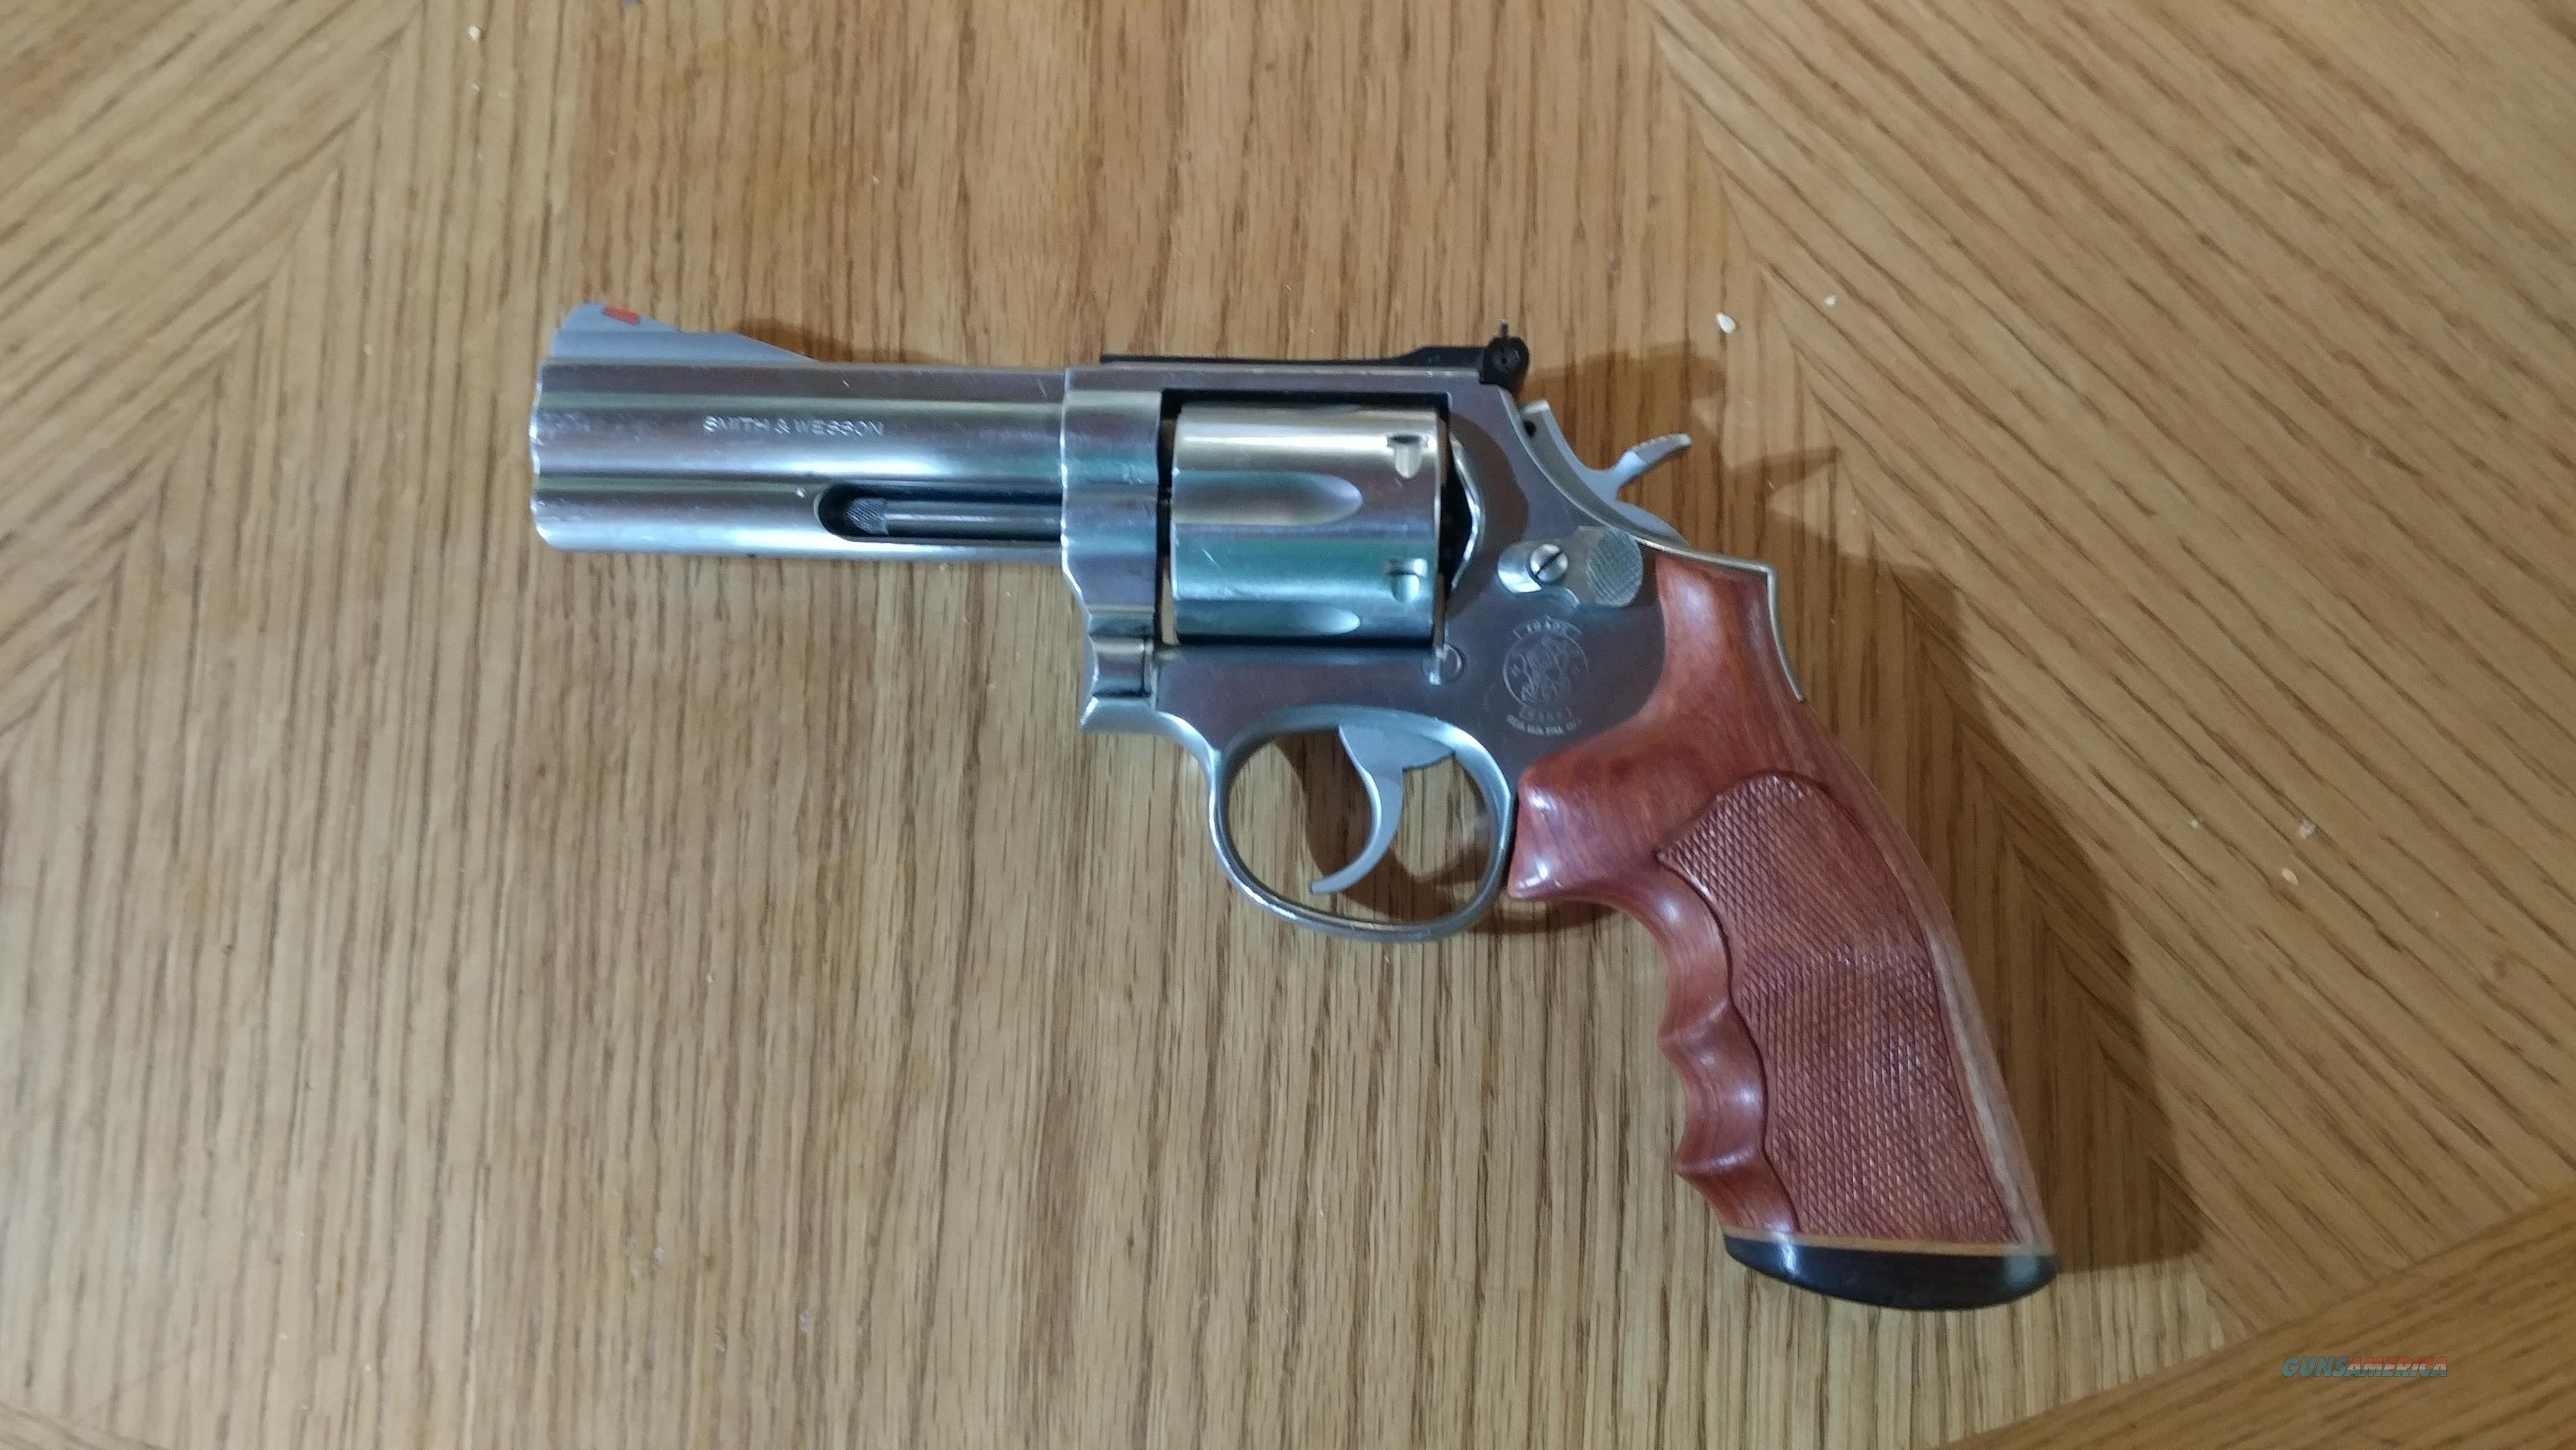 Smith & Wesson 686 Revolver,Stainless, 4 inch barrel, custom grips  Guns > Pistols > Smith & Wesson Revolvers > Full Frame Revolver